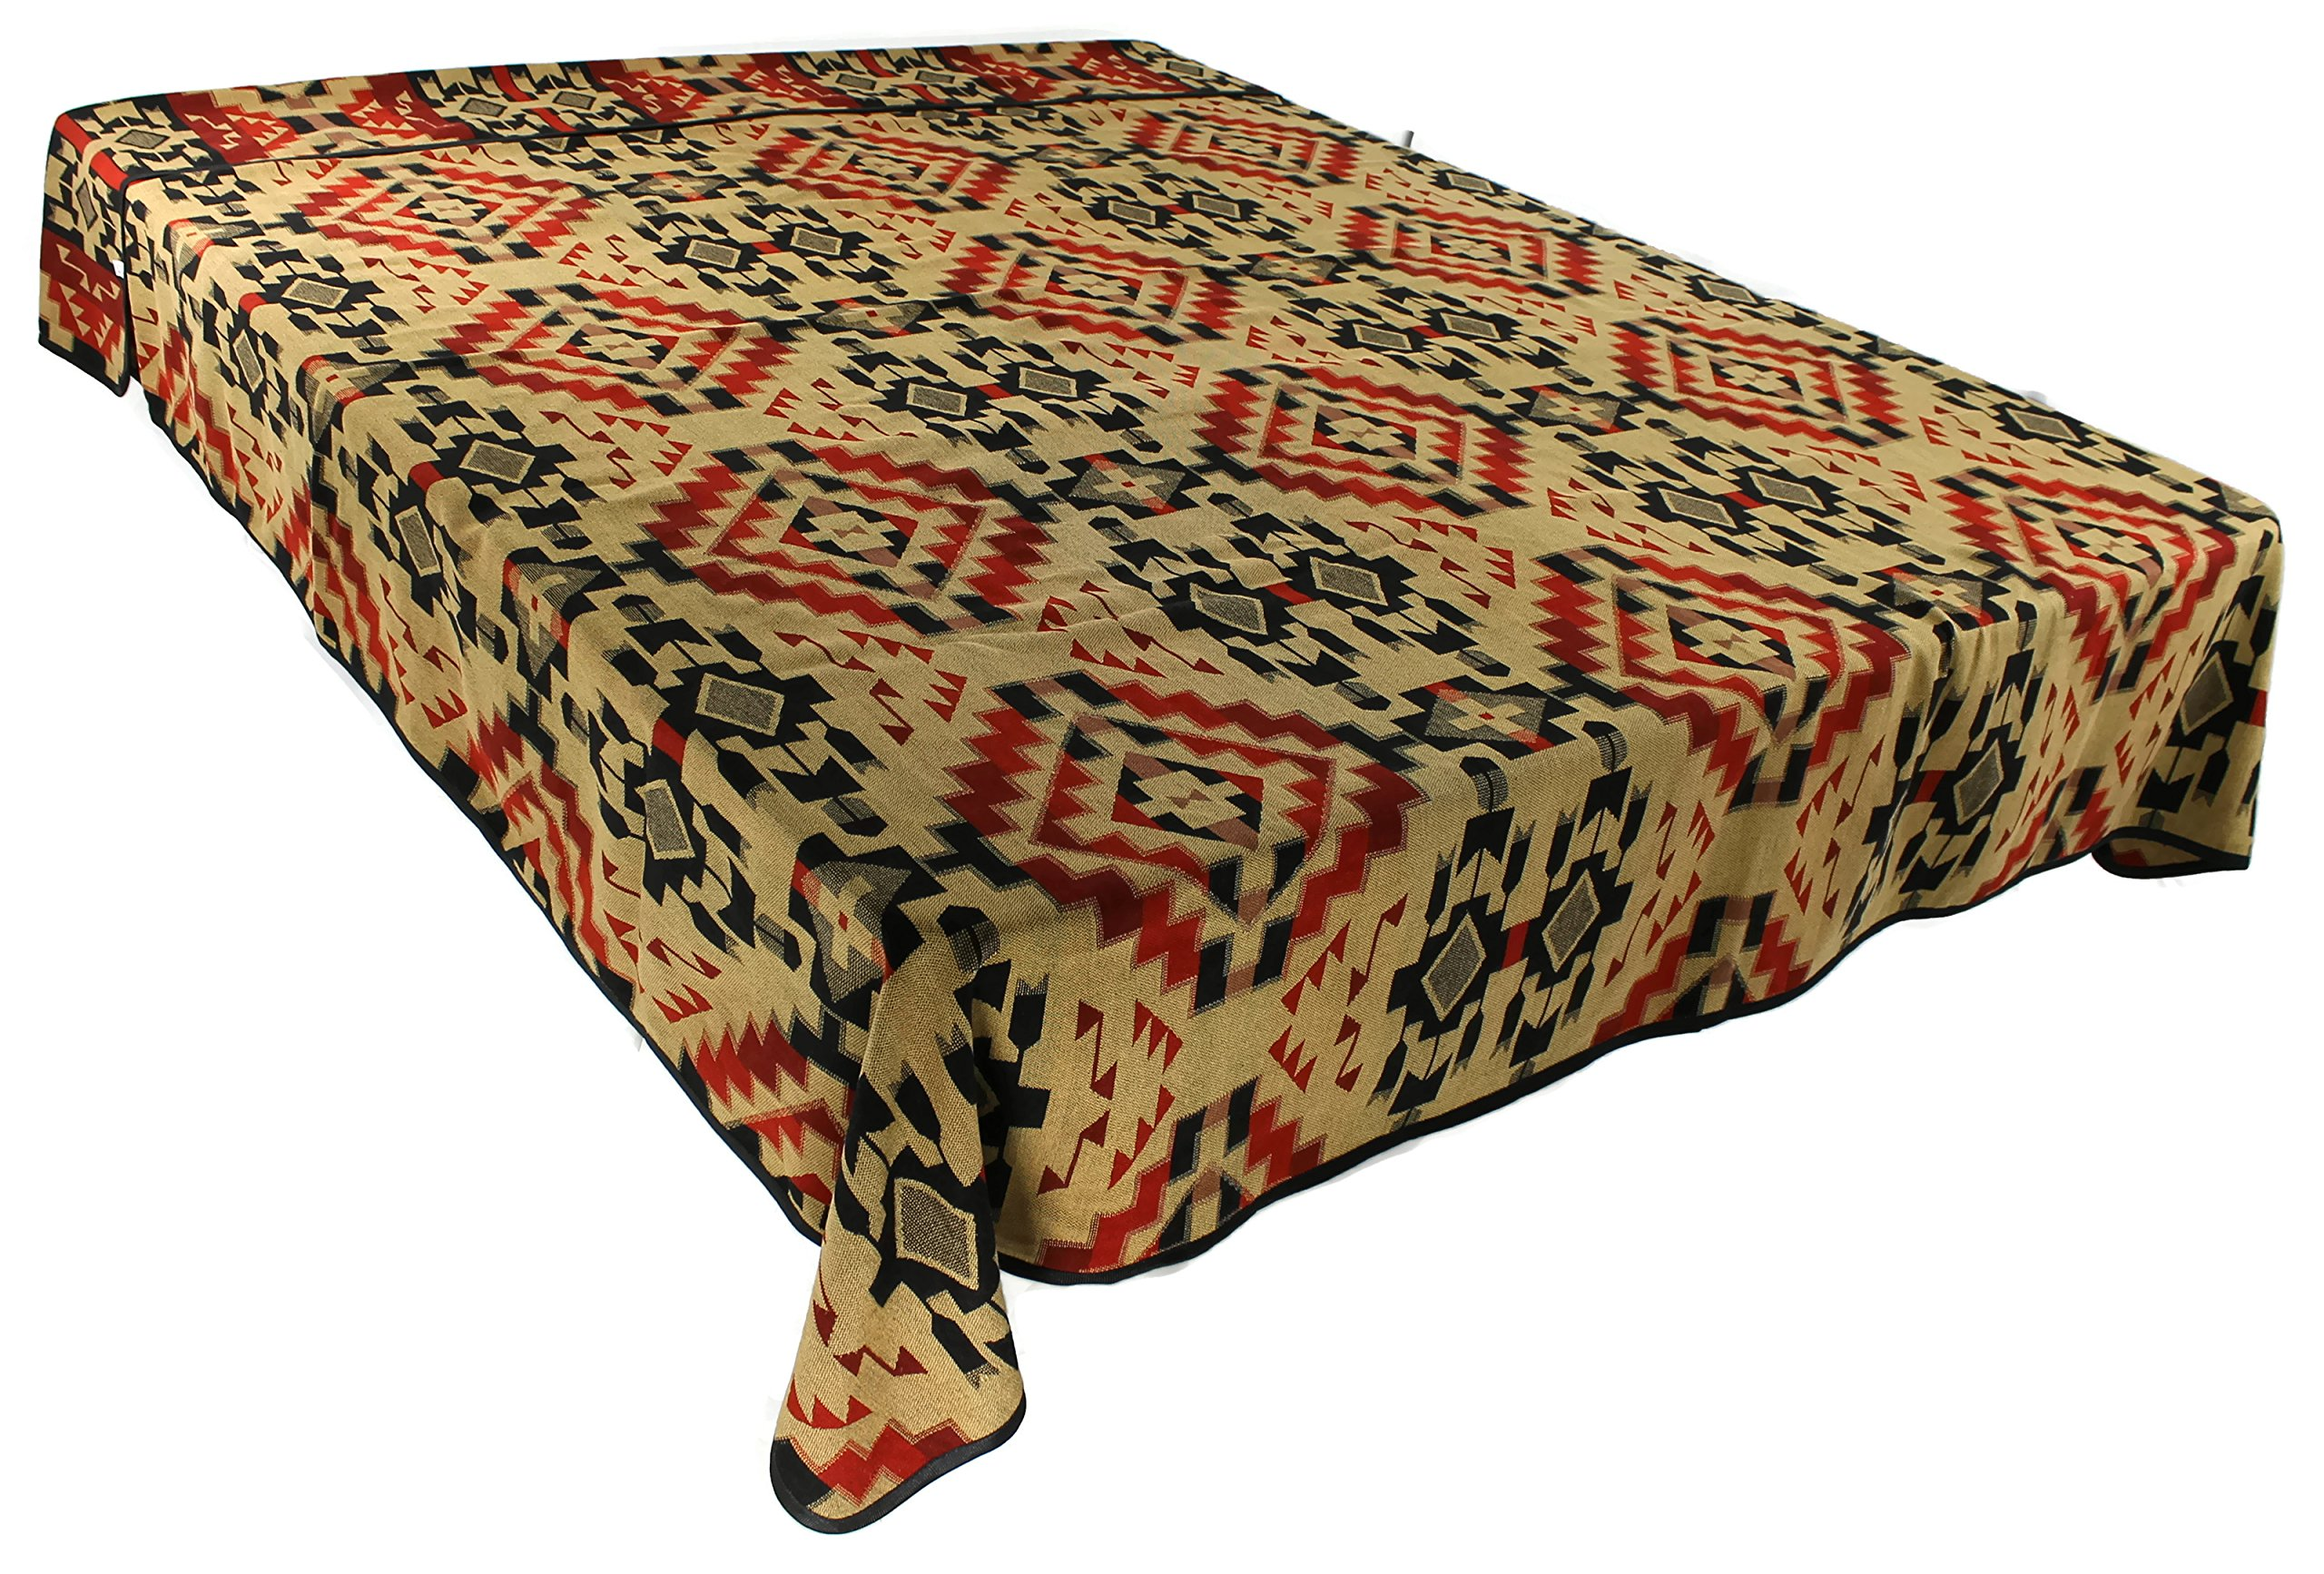 """Splendid Exchange Southwestern Bedding """"Diamond Star Collection"""", Mix and Match, King Size Reversible Bedspread, Diamond Tan and Red"""